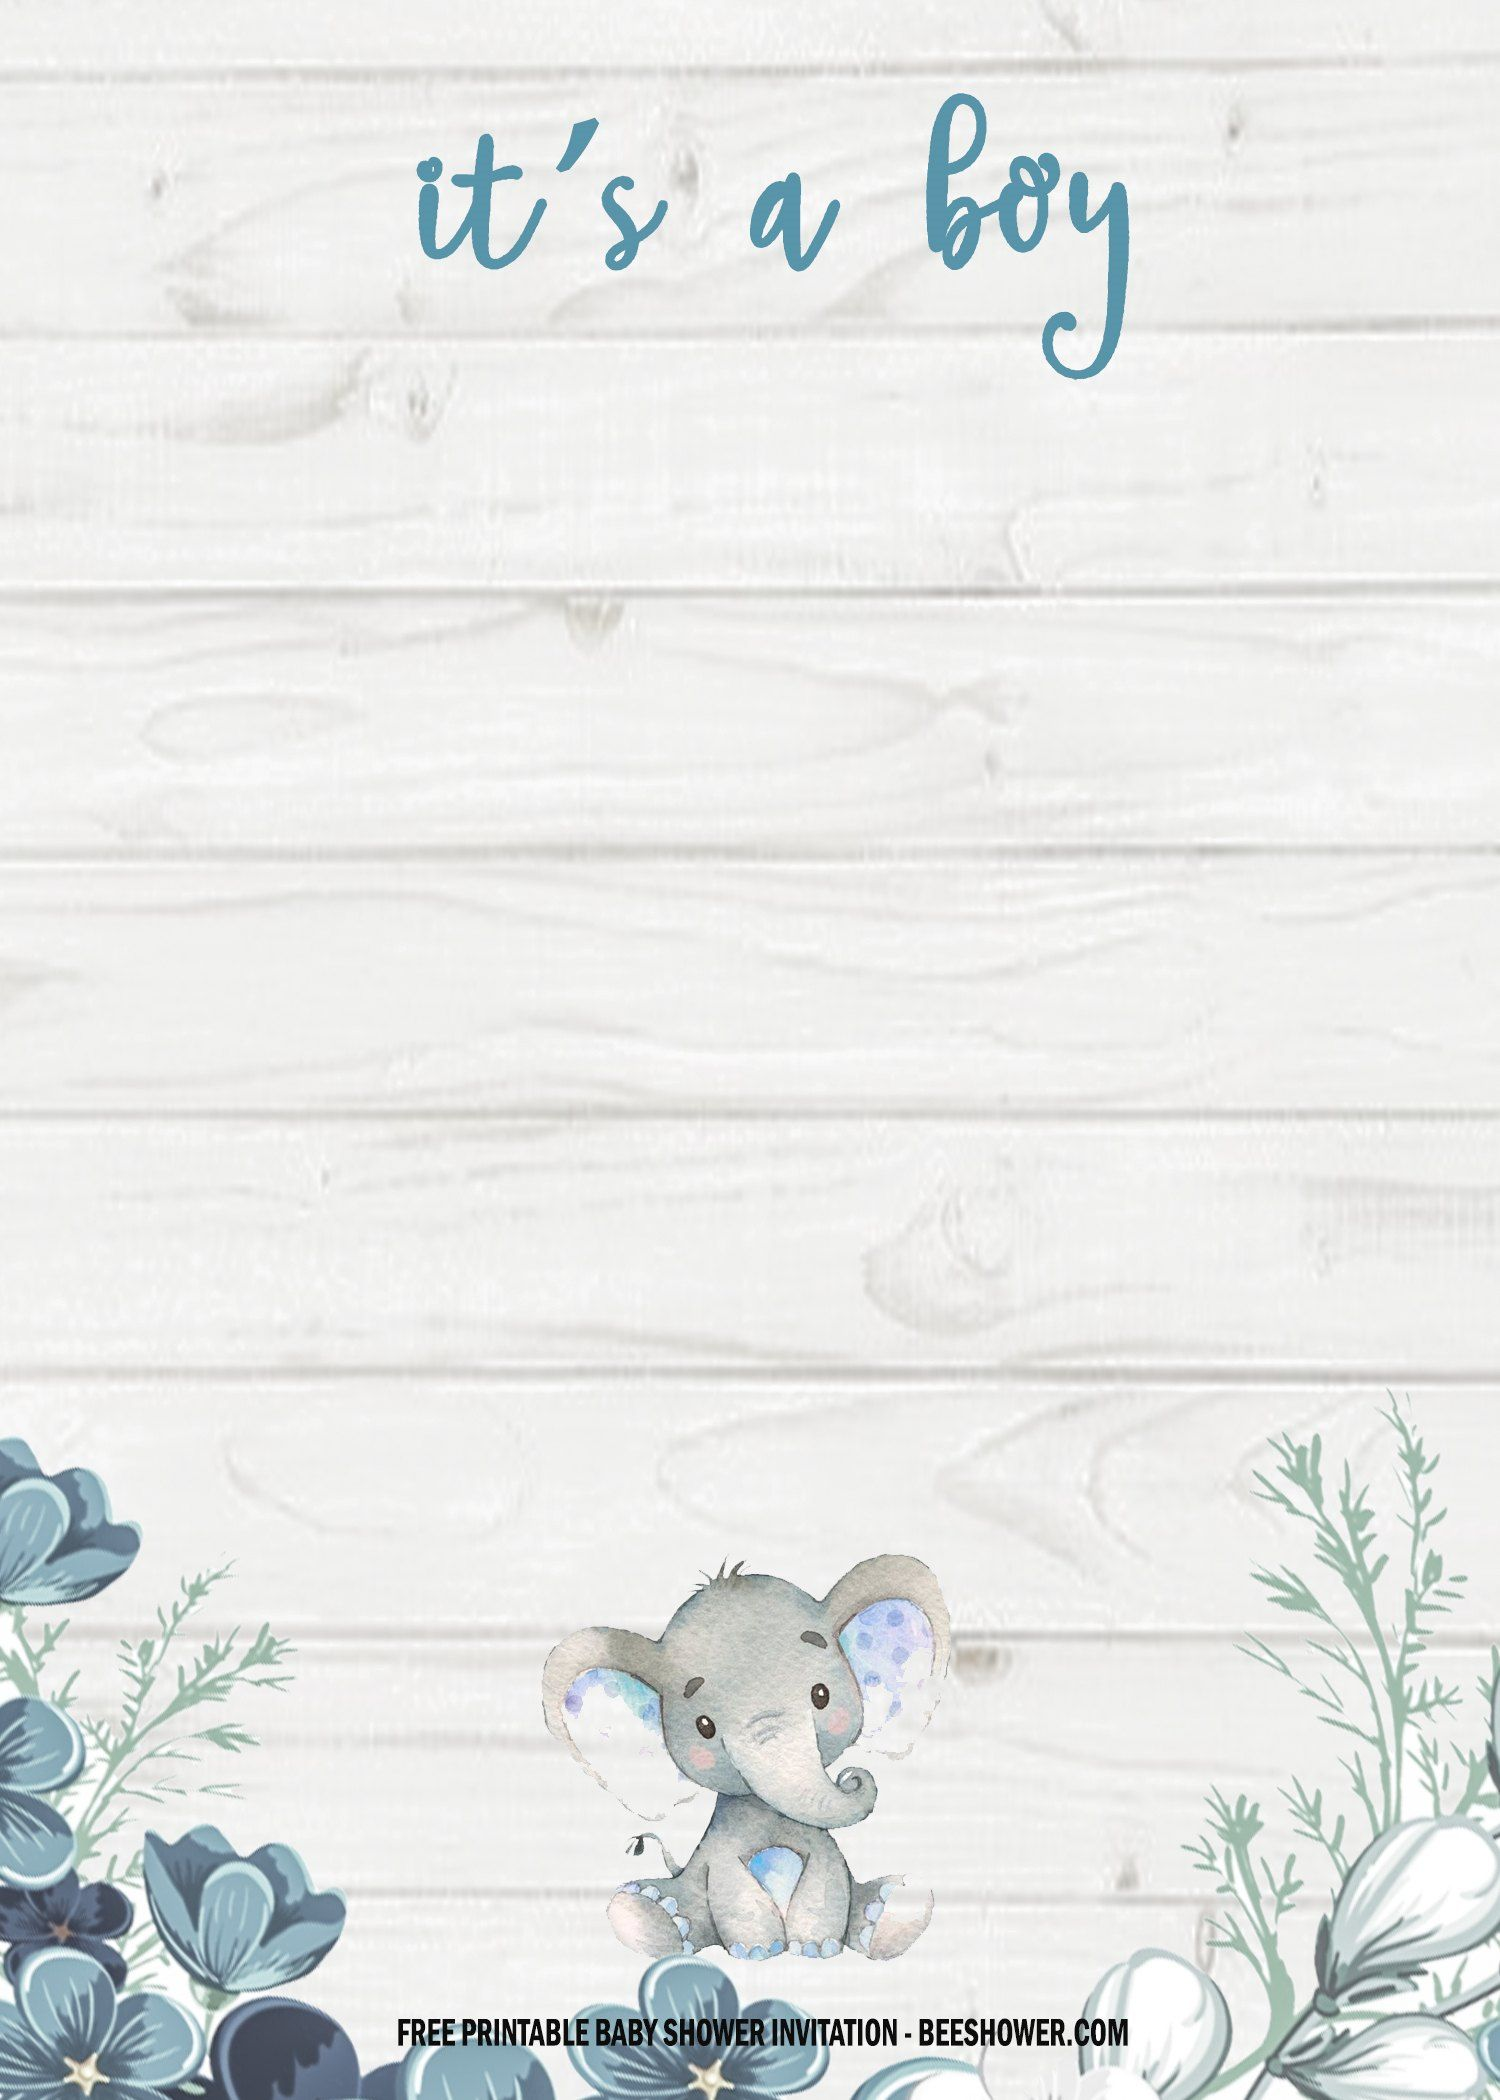 6 Free Blue Elephant Themed Birthday And Baby Shower Invitation